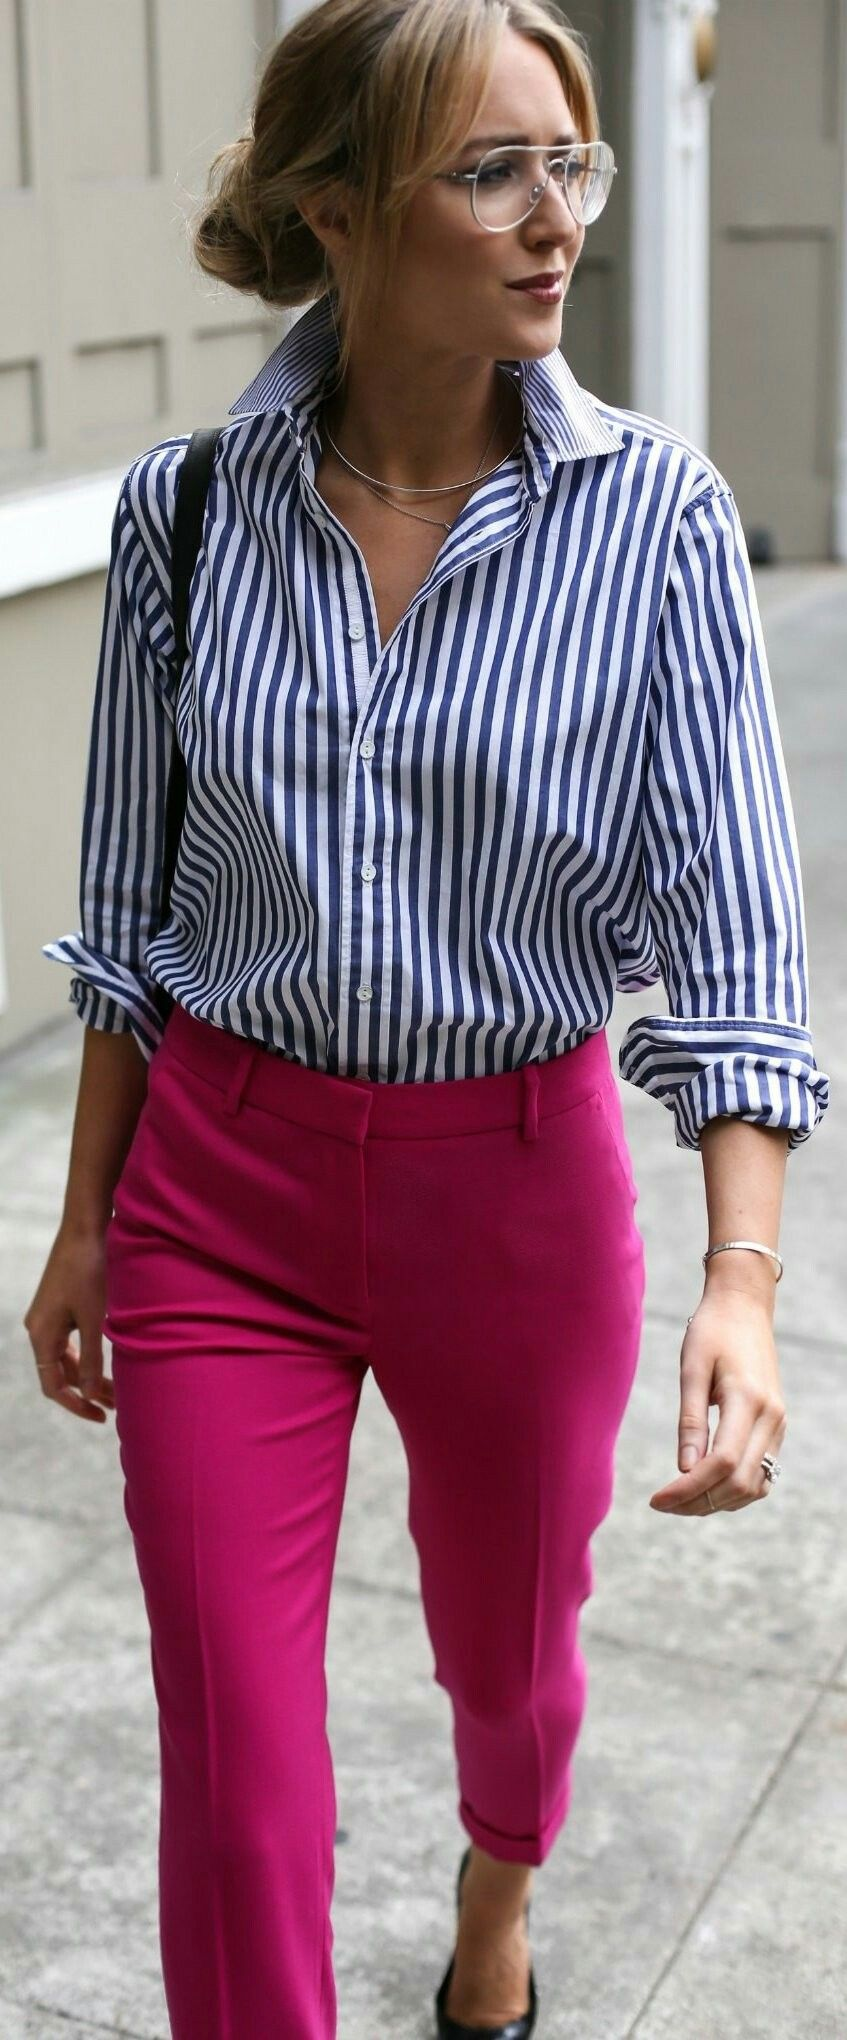 pink shirt outfit office photo - 1